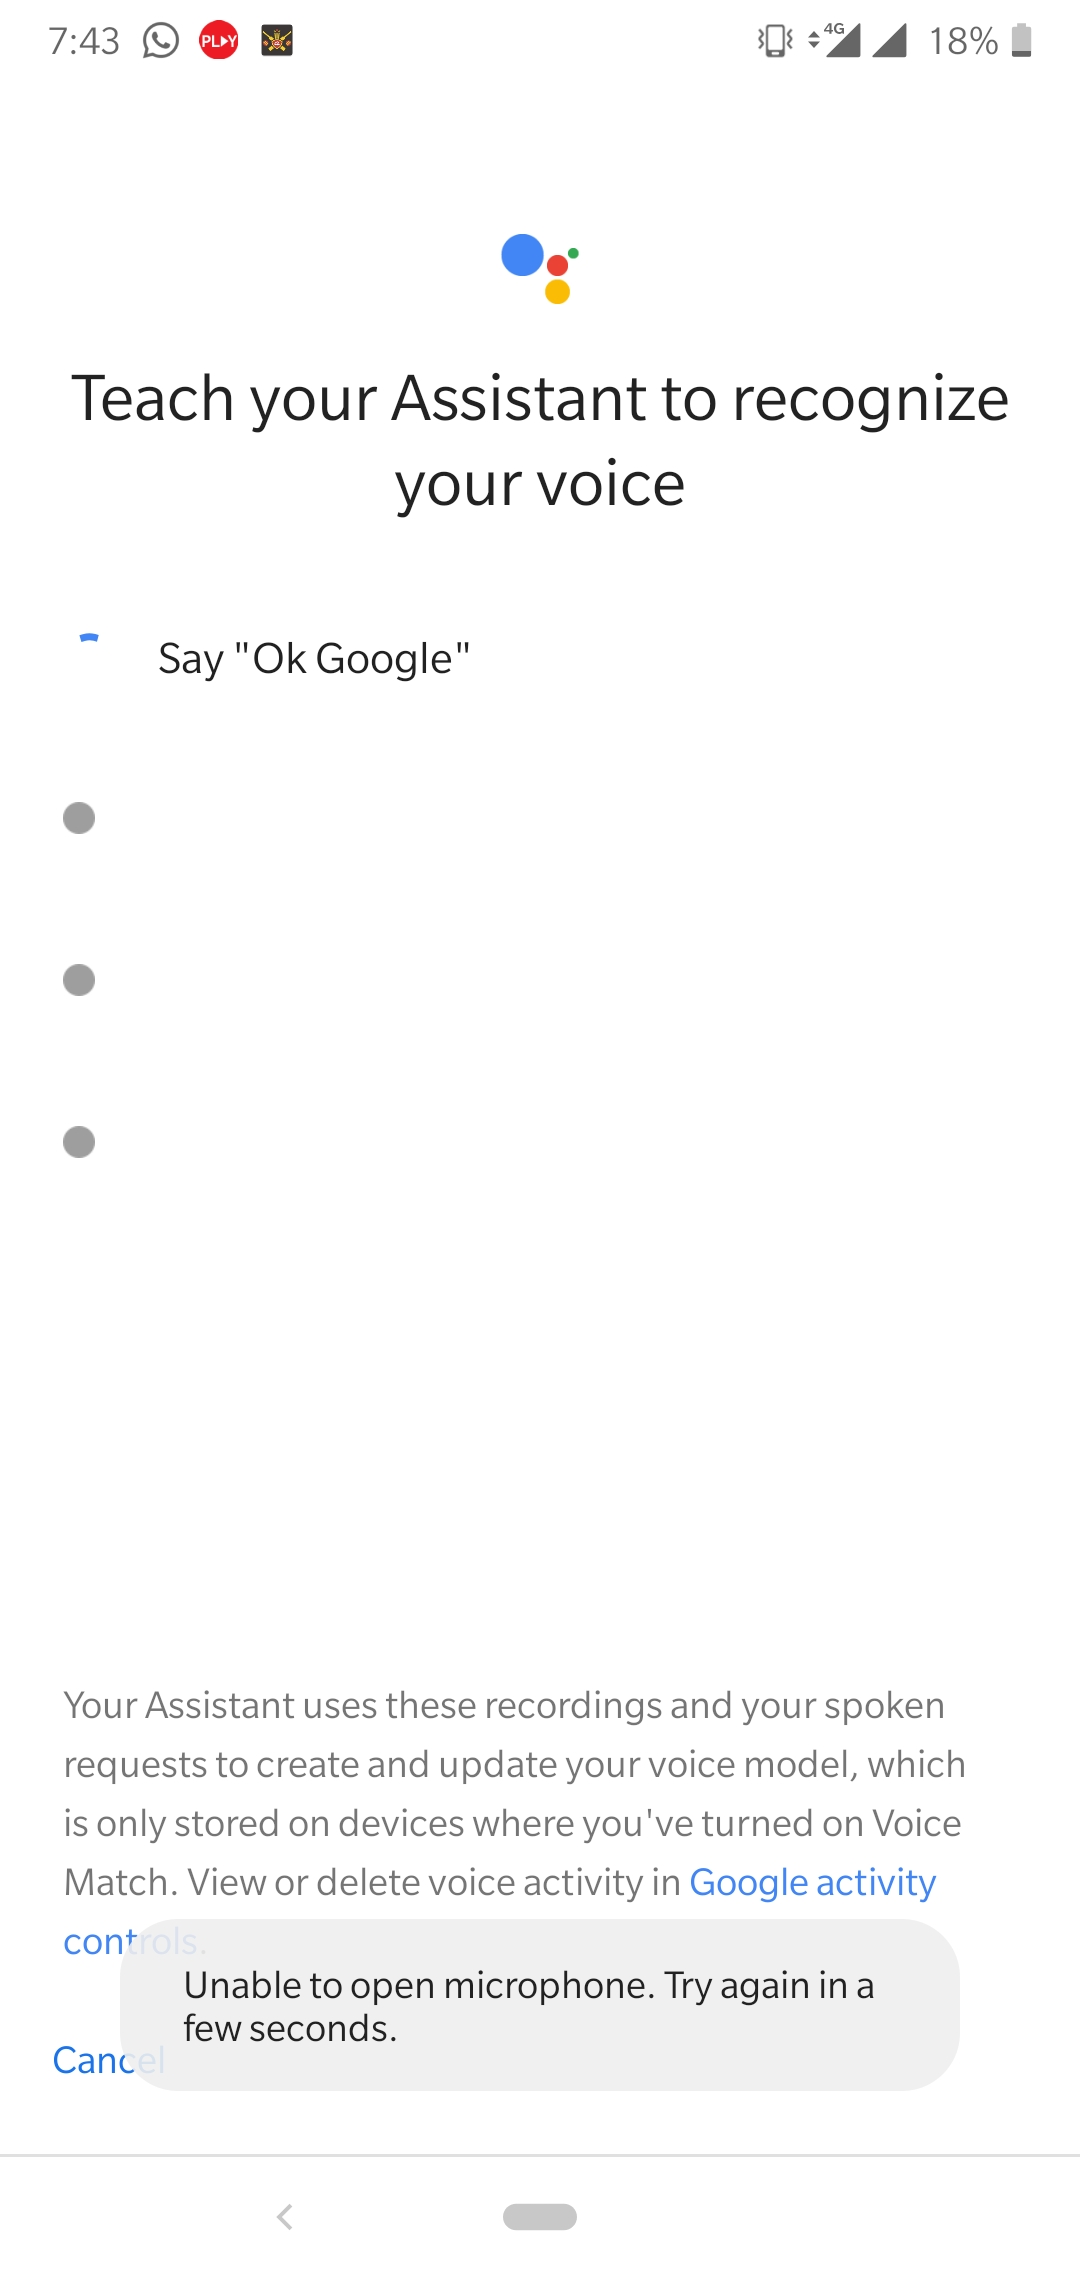 My voice match not working - Google Assistant Help